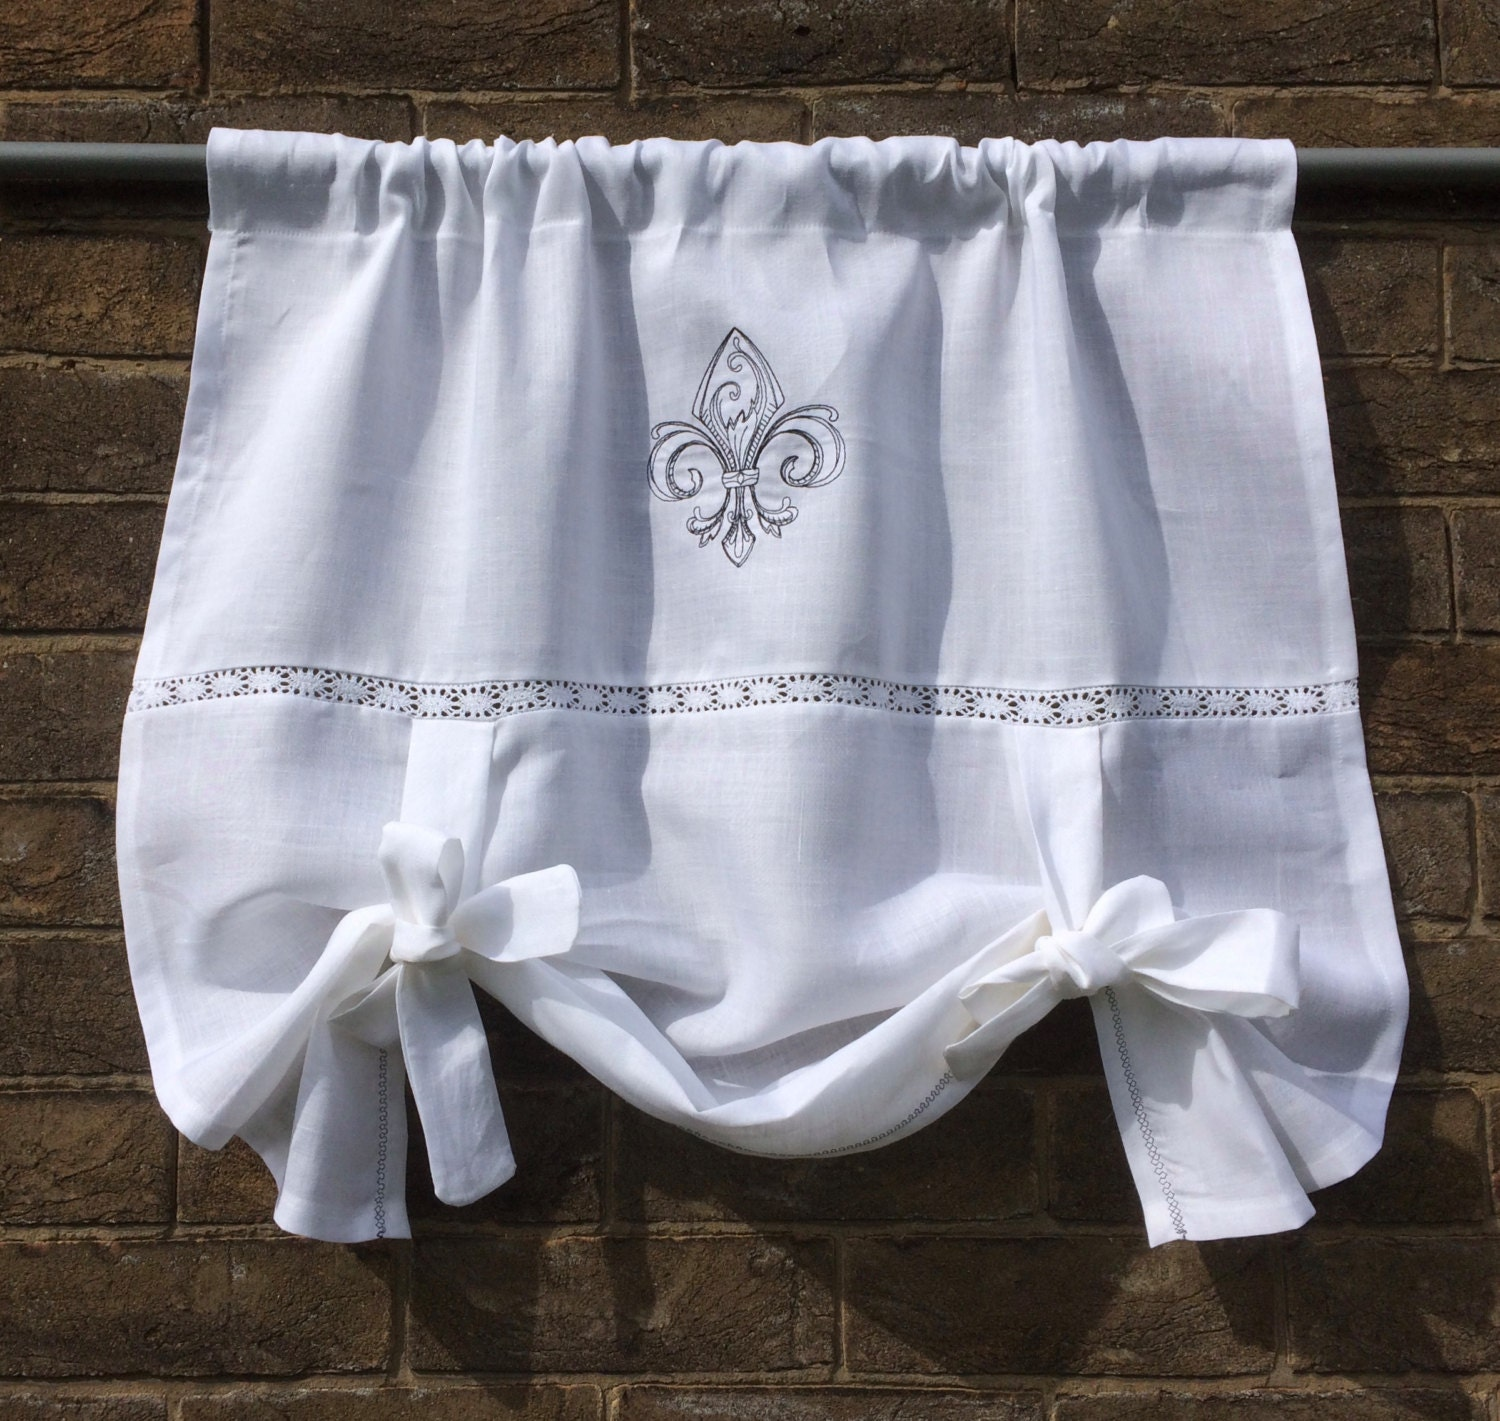 Personalized bedroom Window Valance Optical White Linen Tie Up Shade Monogram Vintage French Fleur de Lis privacy bathroom curtain